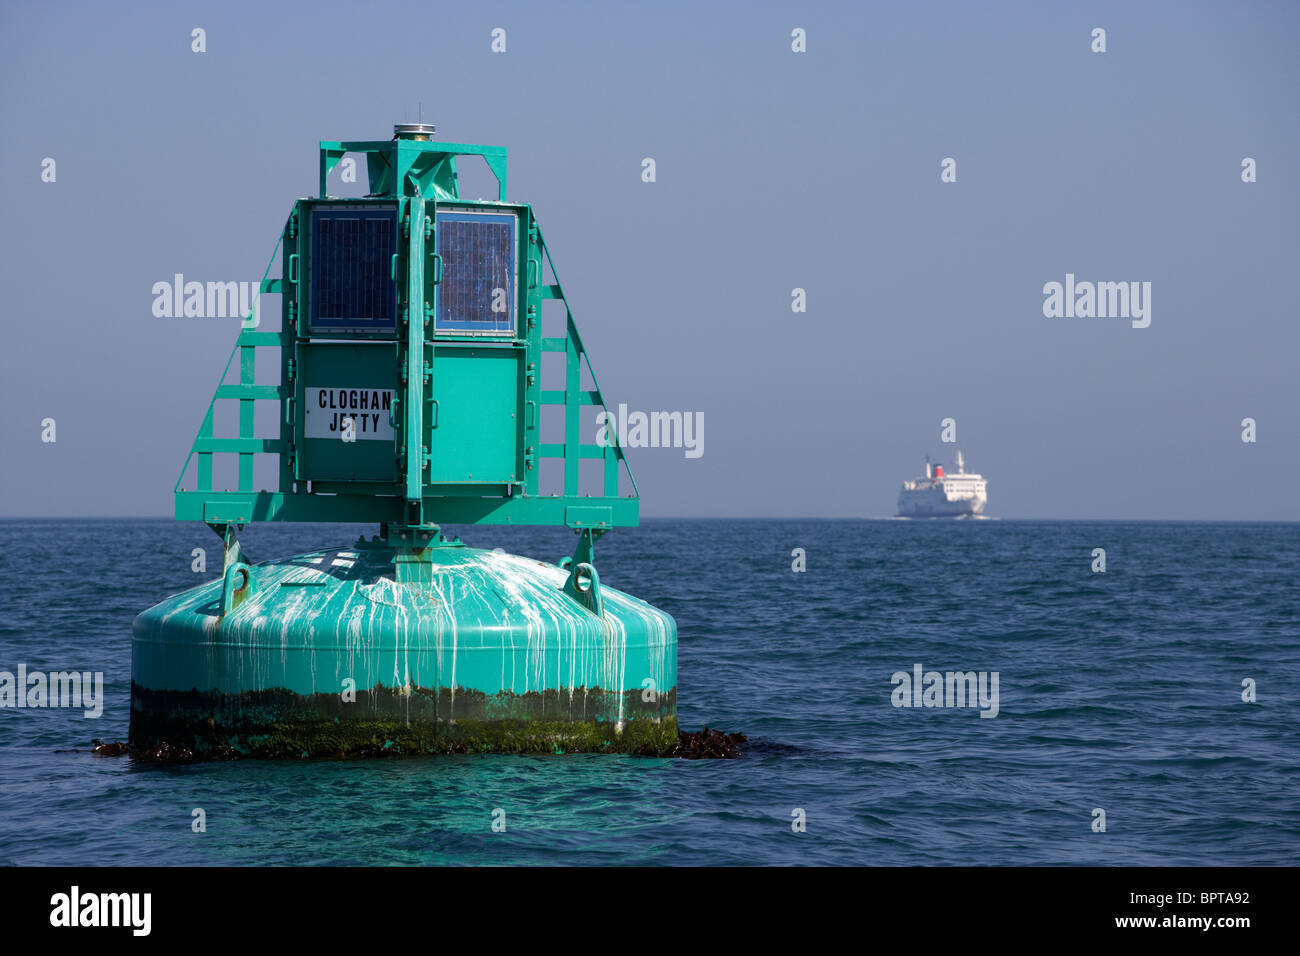 Belfast lough cloghan point maritime navigation buoy warning marker with ferry in the background - Stock Image